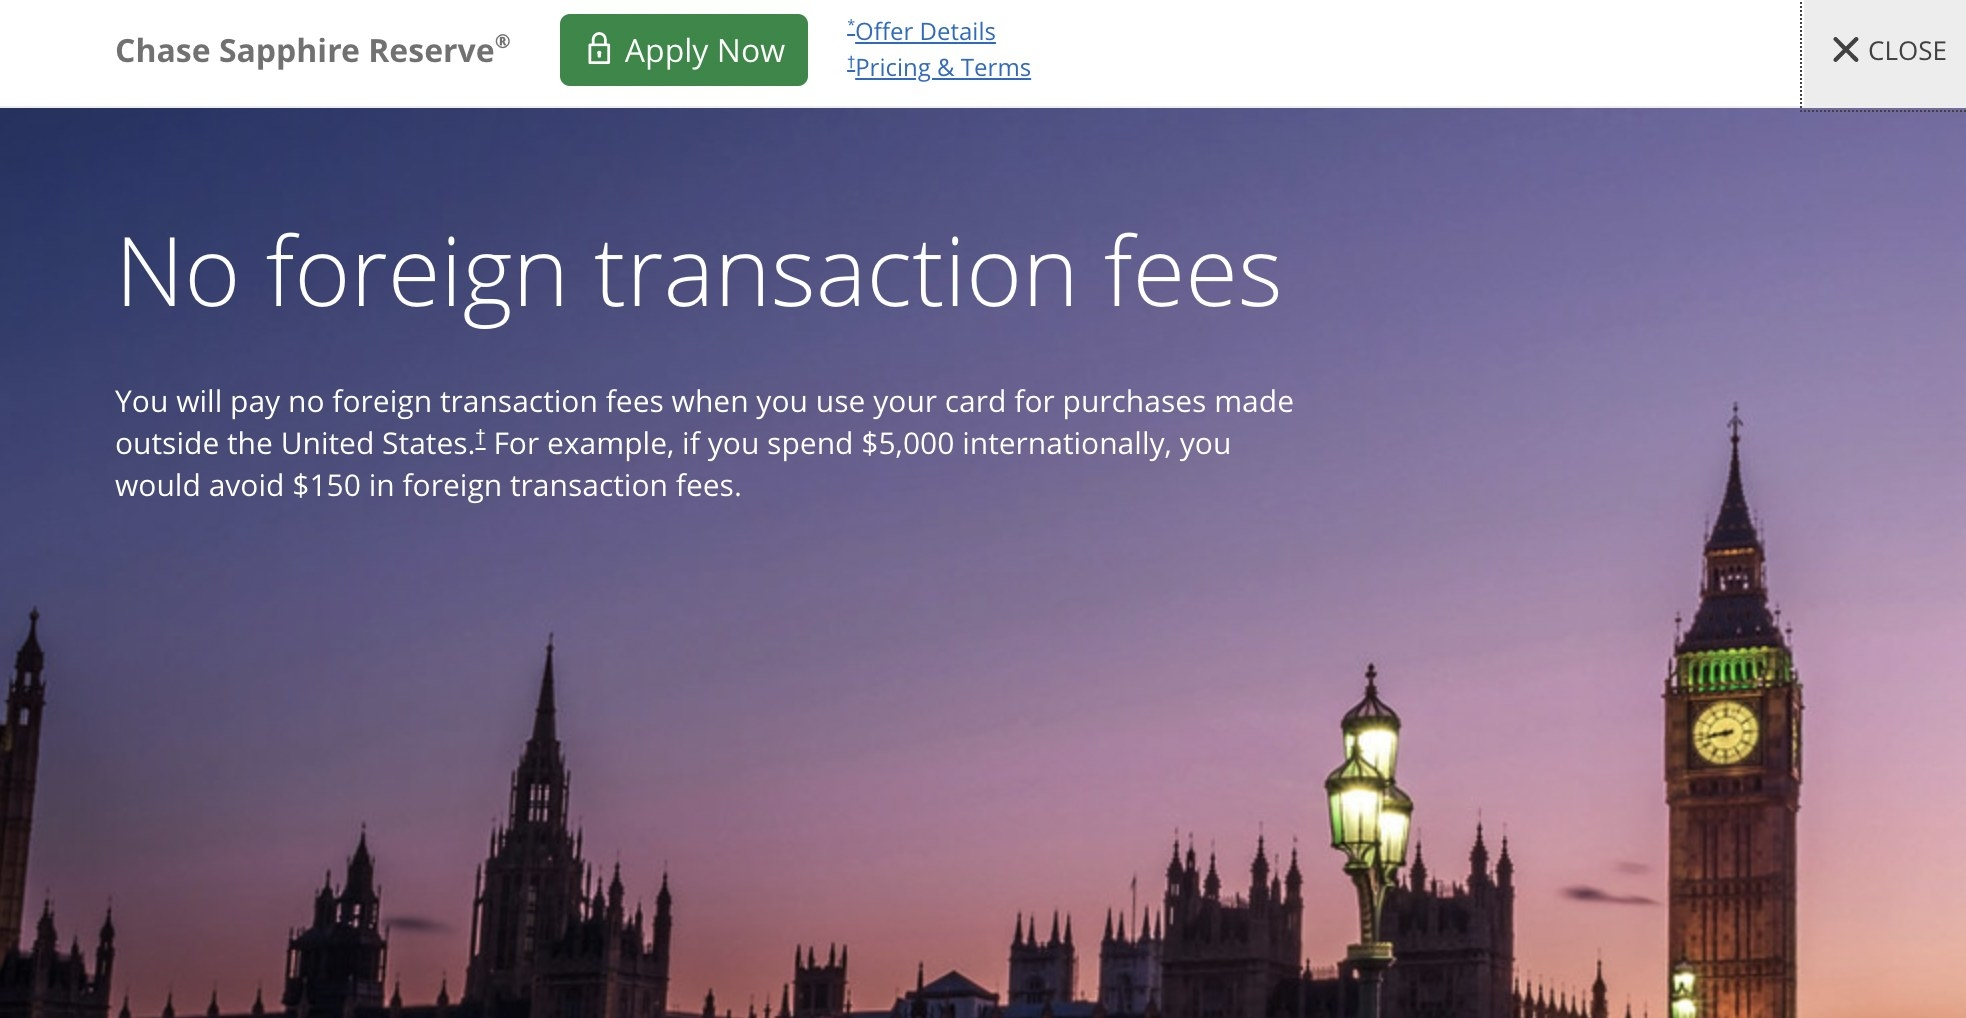 Screenshot showing no foreign transaction fees from Chase